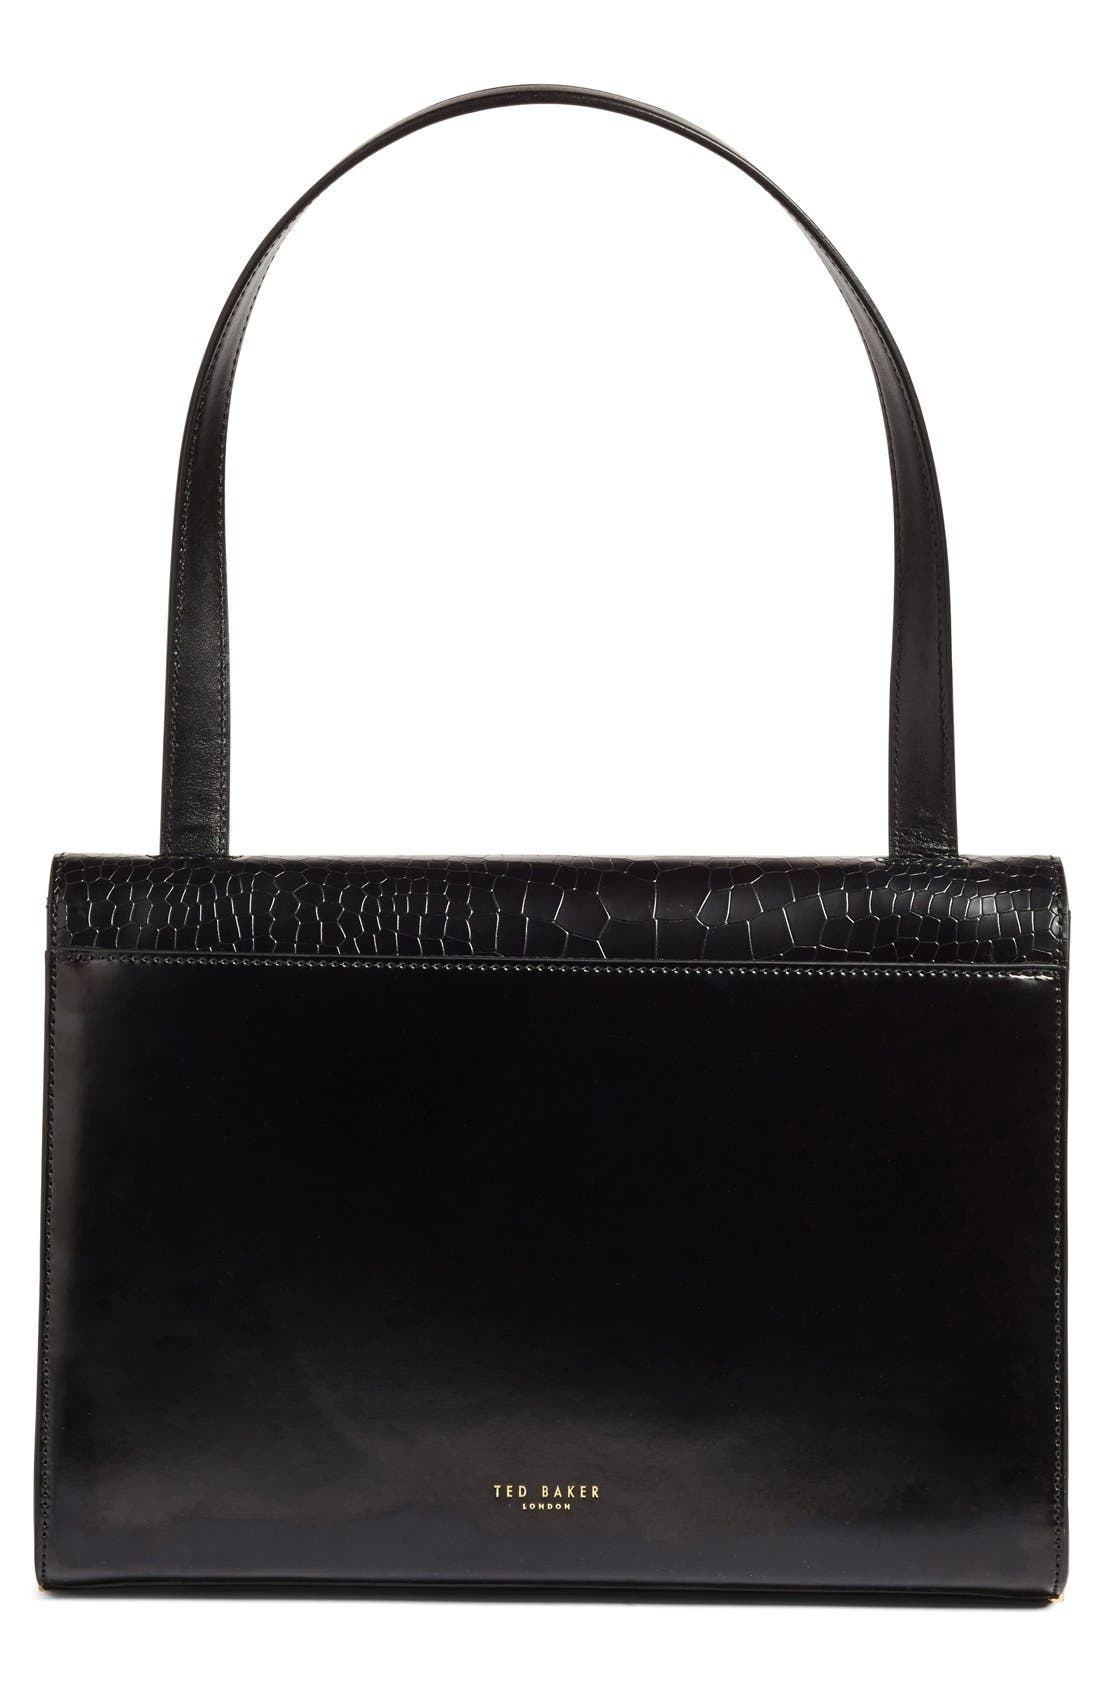 Alternate Image 3  - Ted Baker London 'Lowri' Croc Embossed Leather Shoulder Bag